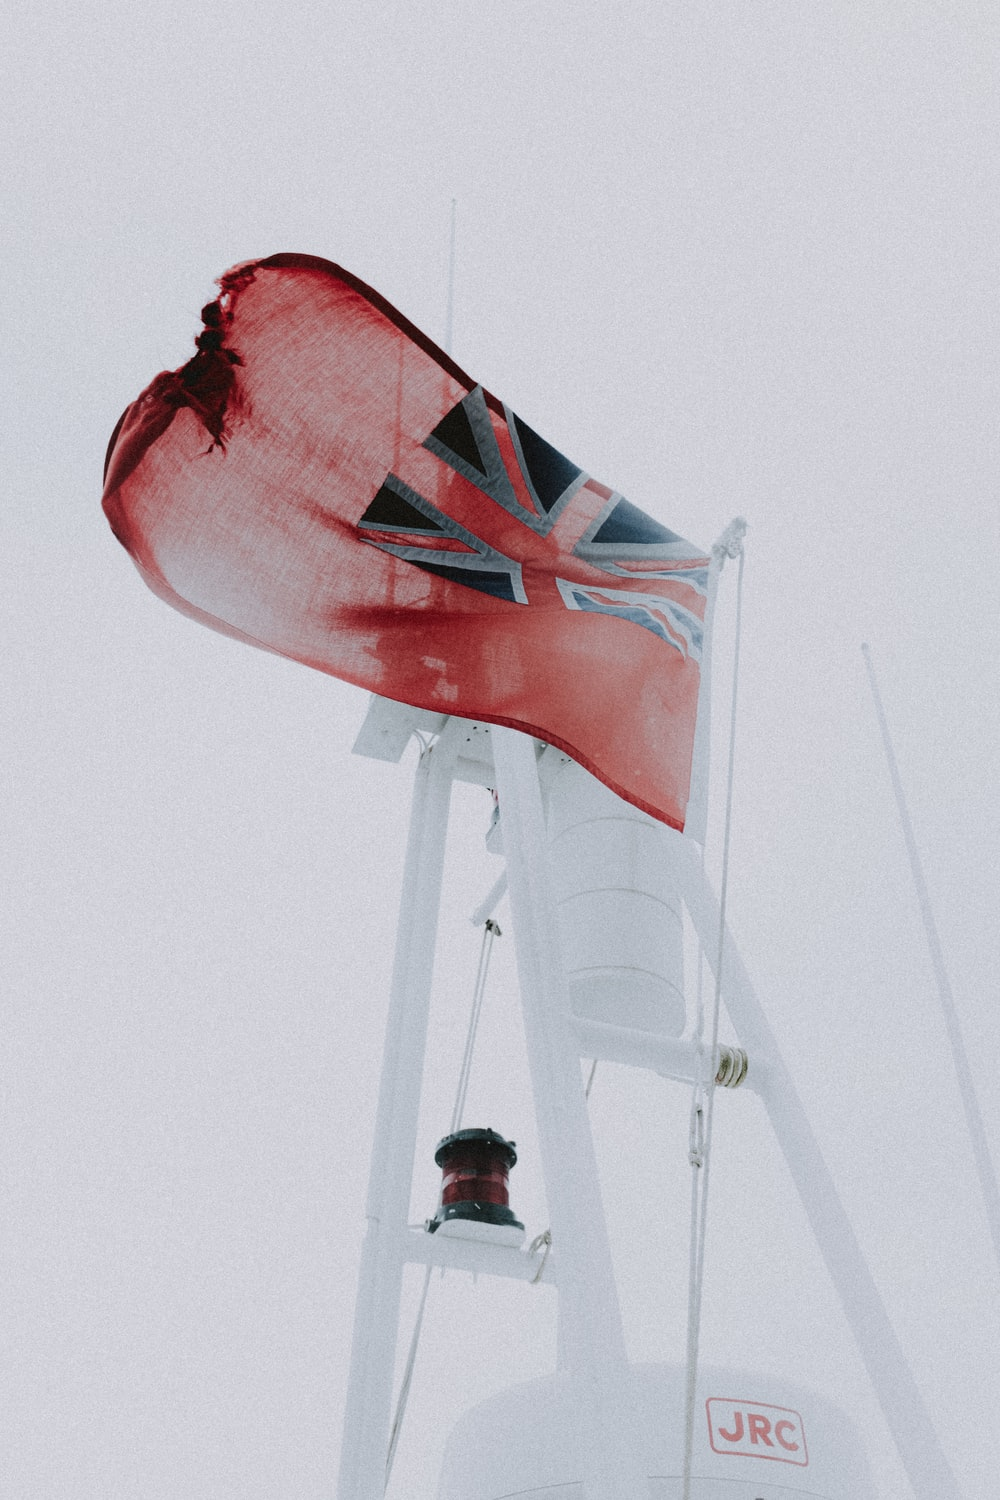 red and white flag on white metal pole